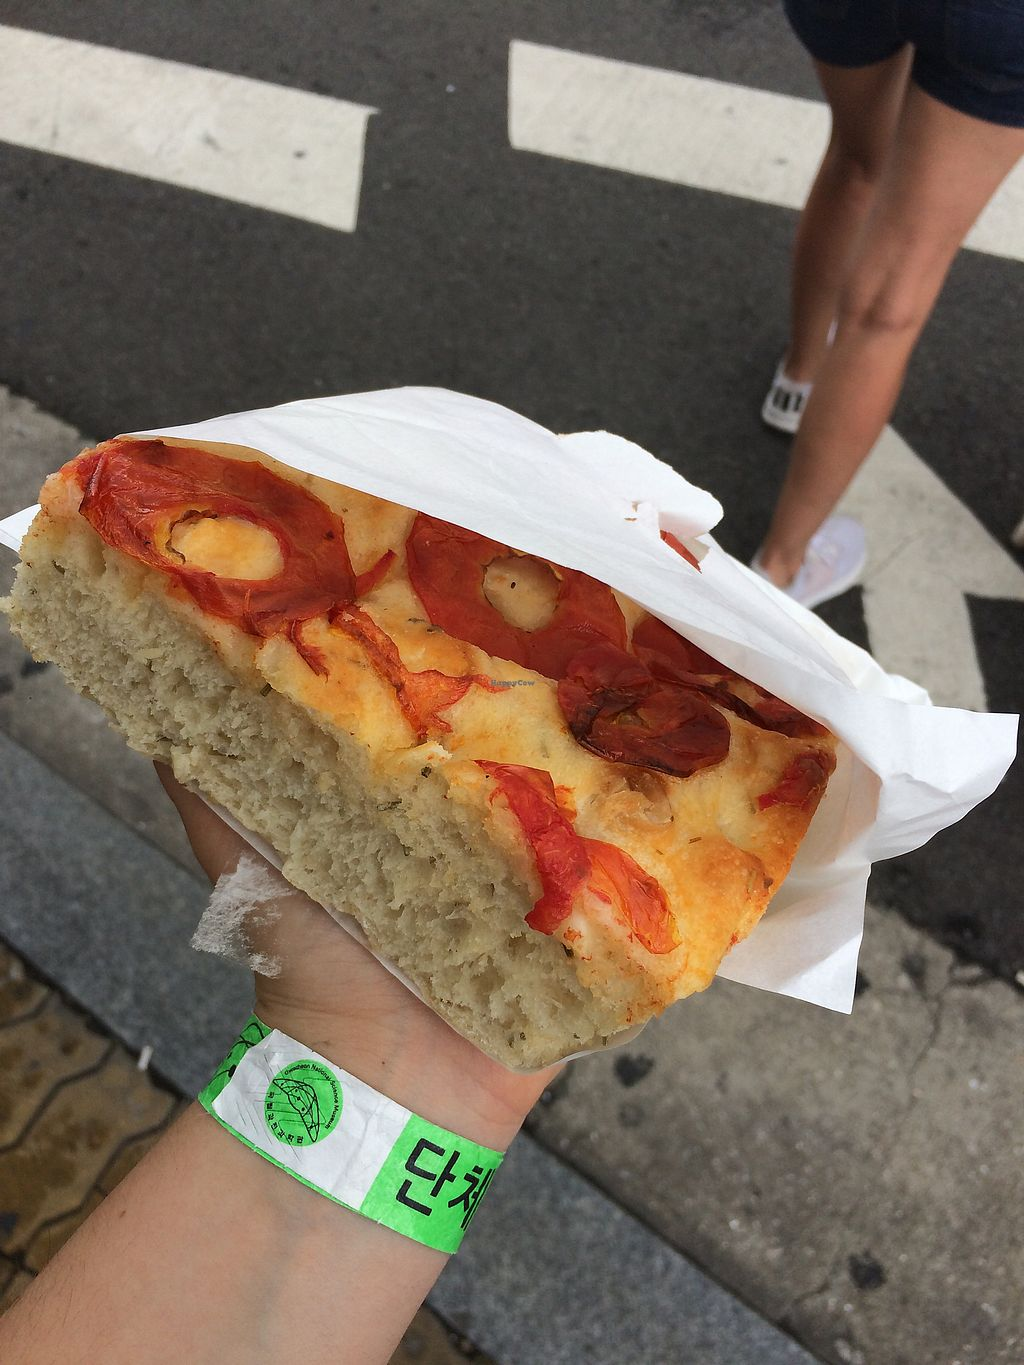 """Photo of The Bakers Table - 더베이커스테이블  by <a href=""""/members/profile/ellieallan"""">ellieallan</a> <br/>focaccia tomato bread  <br/> July 16, 2017  - <a href='/contact/abuse/image/85311/280920'>Report</a>"""